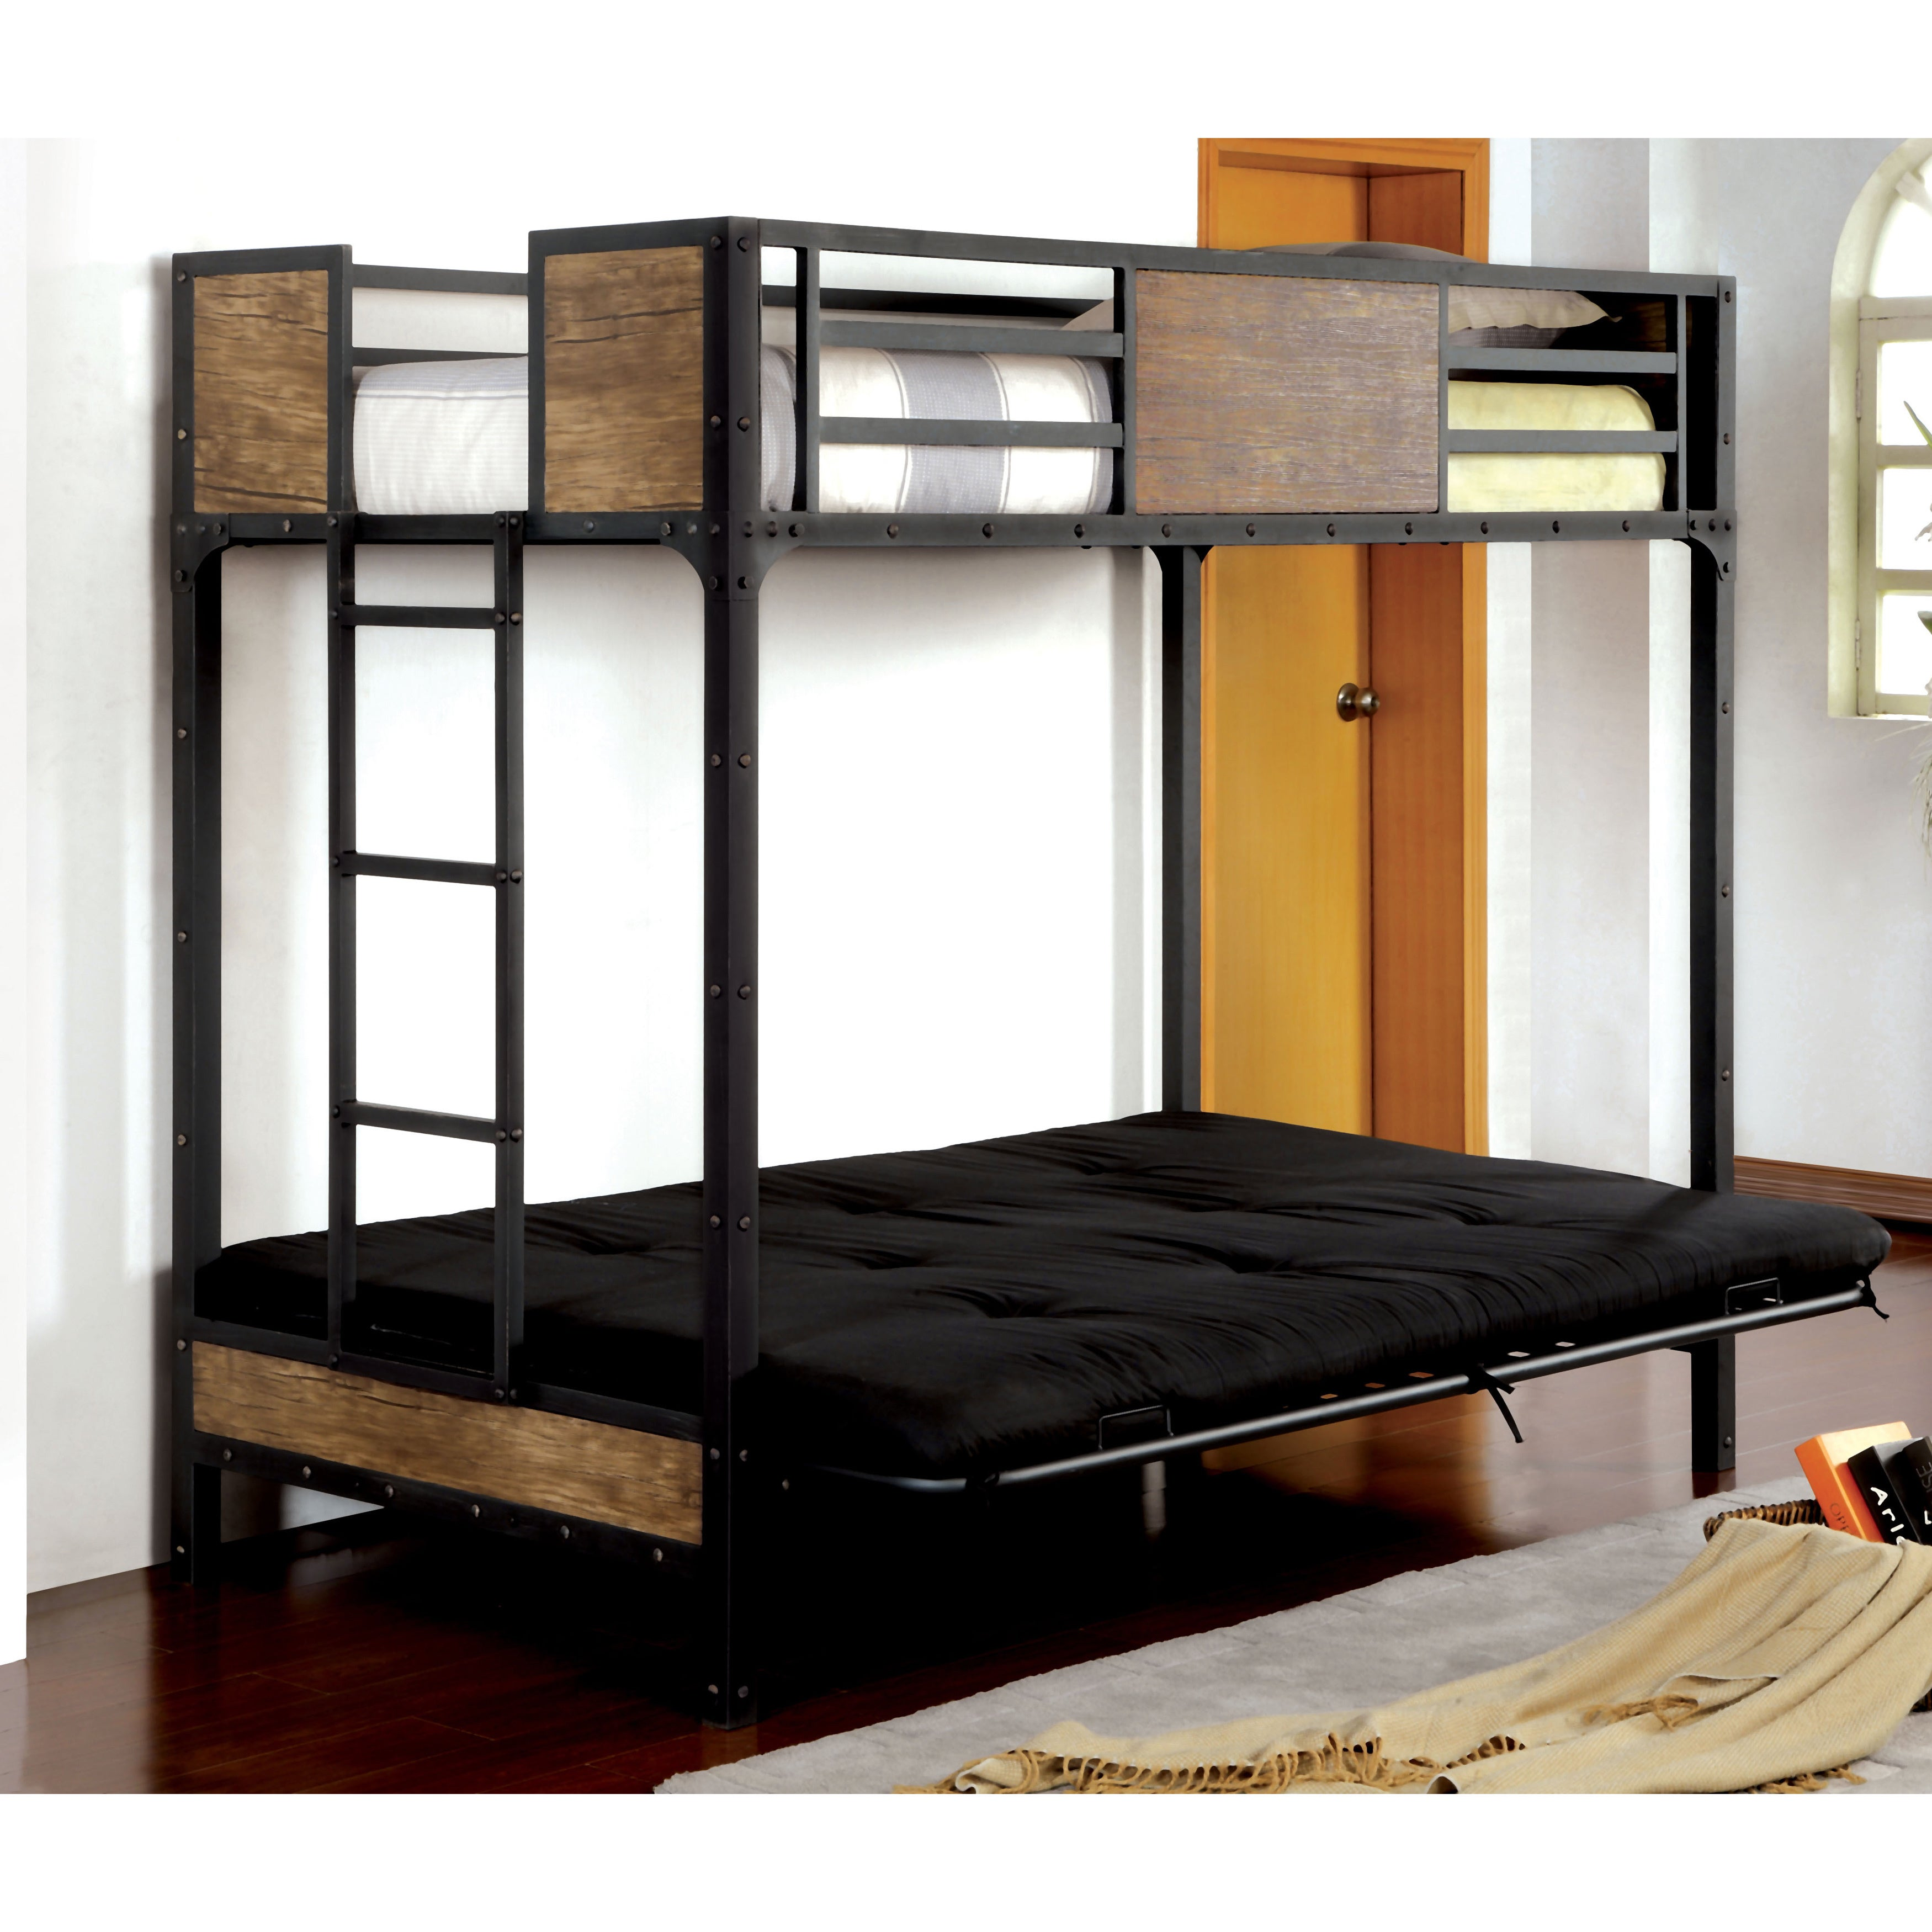 den futon bed home overstock porch garden sofa free product today convertible bridgeport halsted shipping futons base